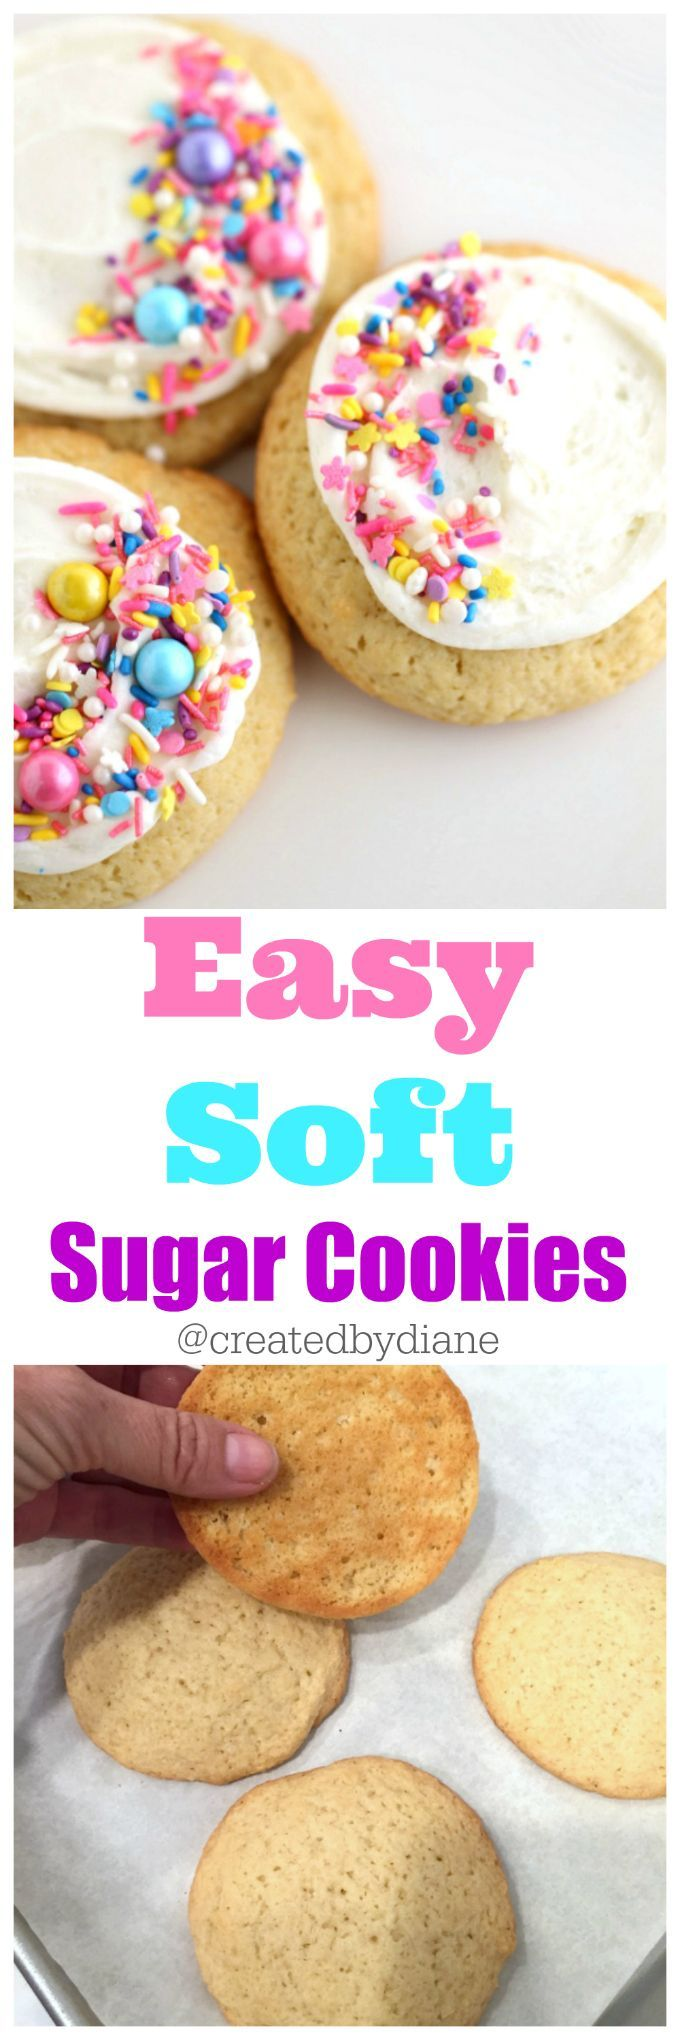 easy soft sugar cookies with UNICORN Sprinkles Buttercream Frosting, lofthouse style bakery cookies @createdbydiane